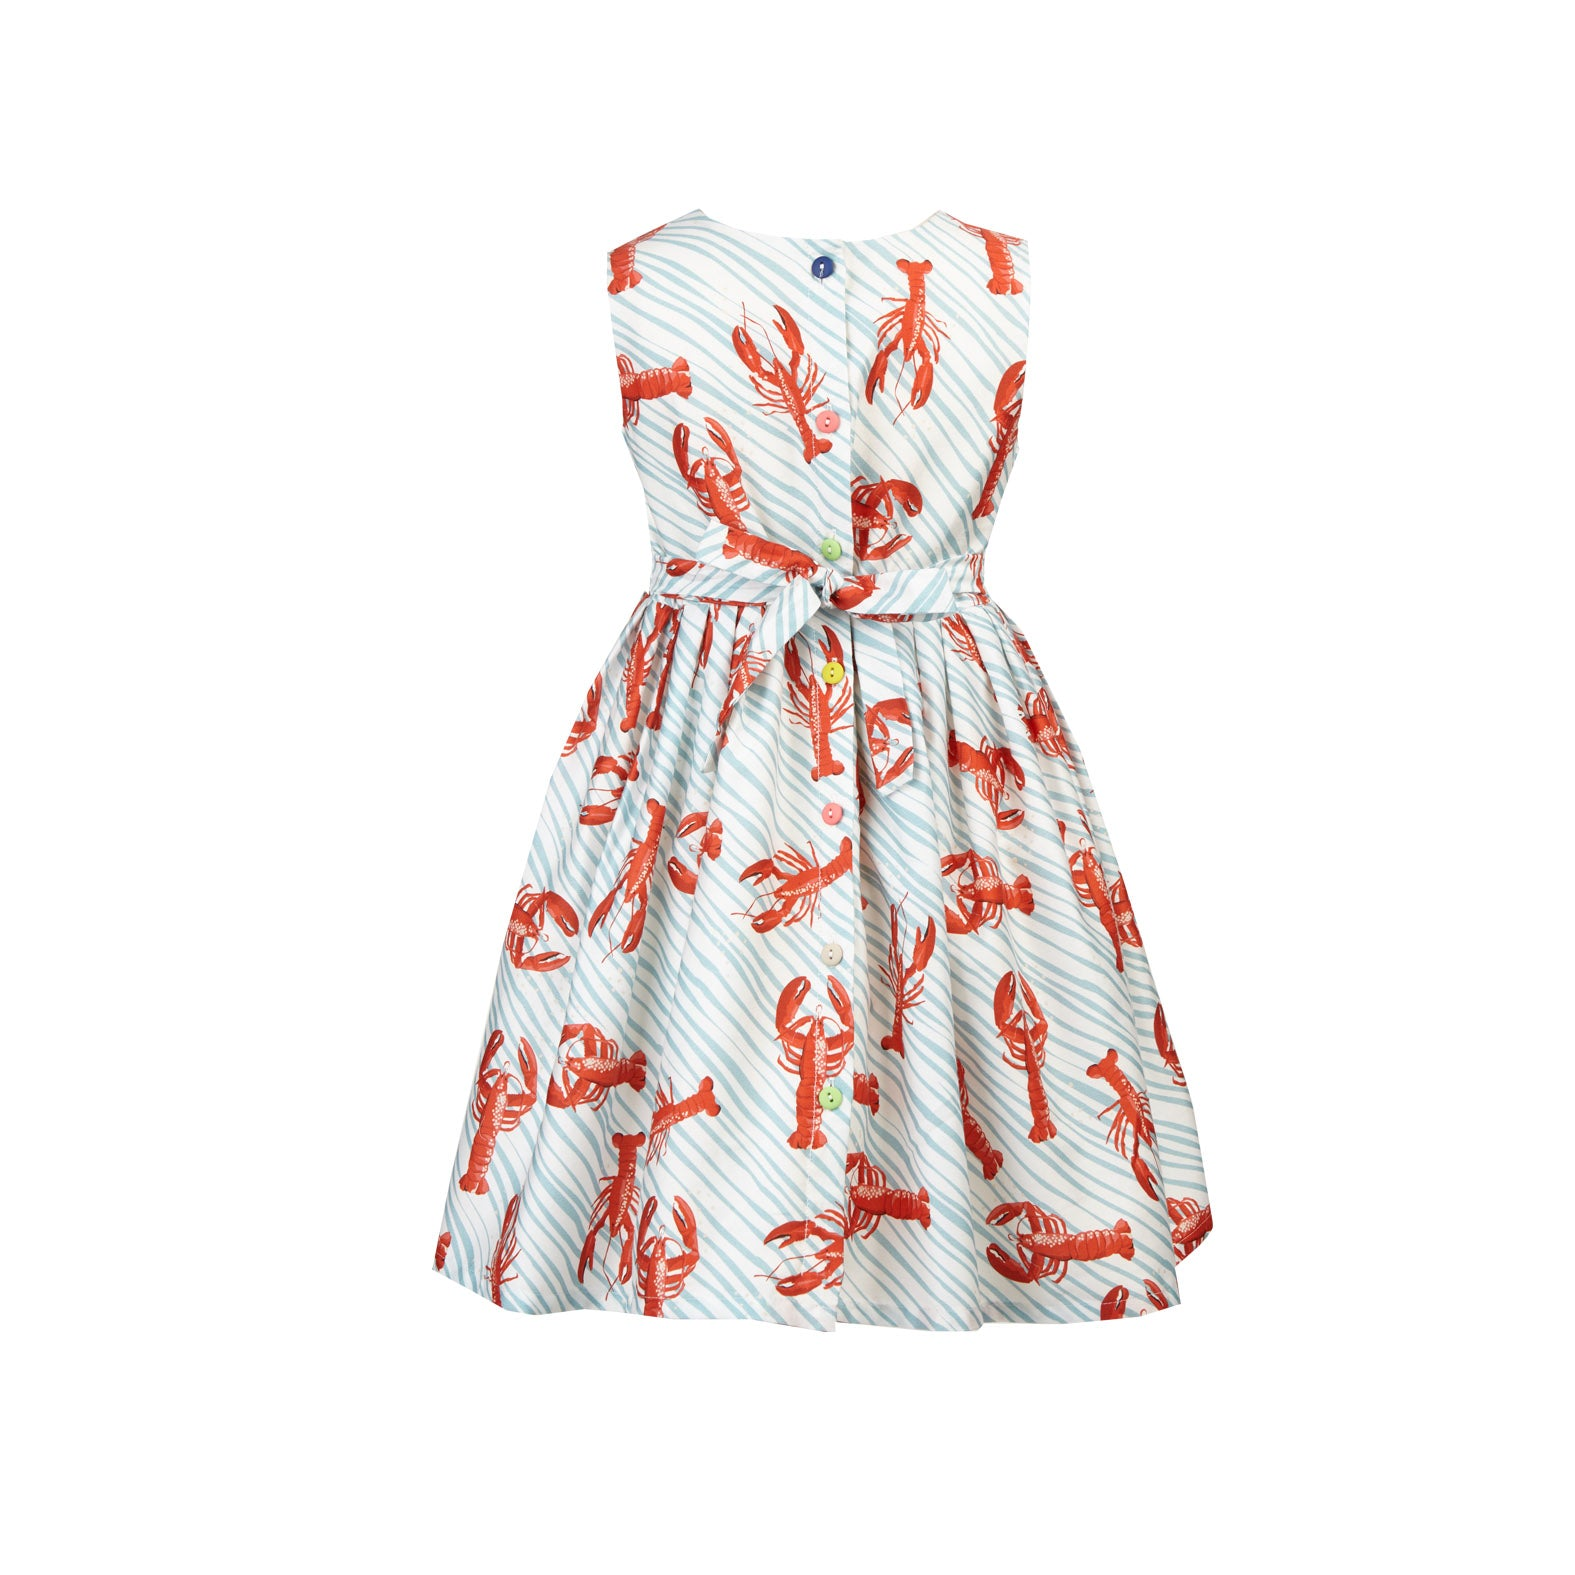 Martha - Light Blue Lobsters Organic Cotton Dress for Girls